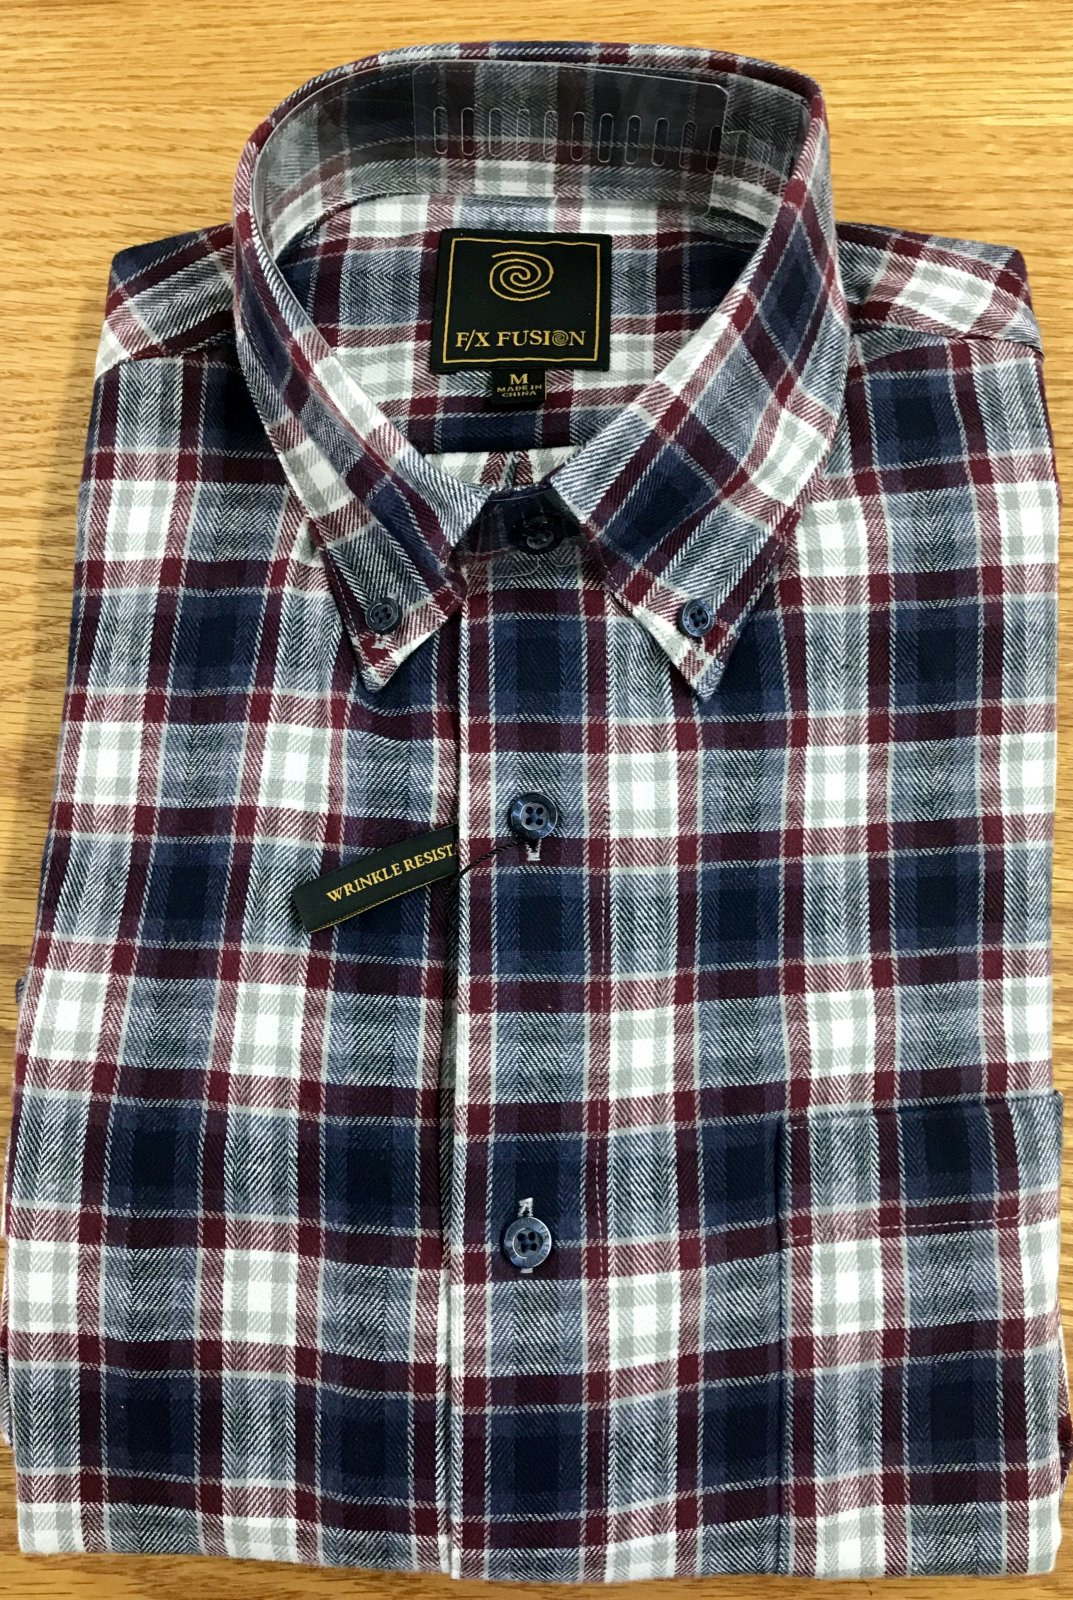 FX Fusion Burg/Multi Plaid Flannel Shirt